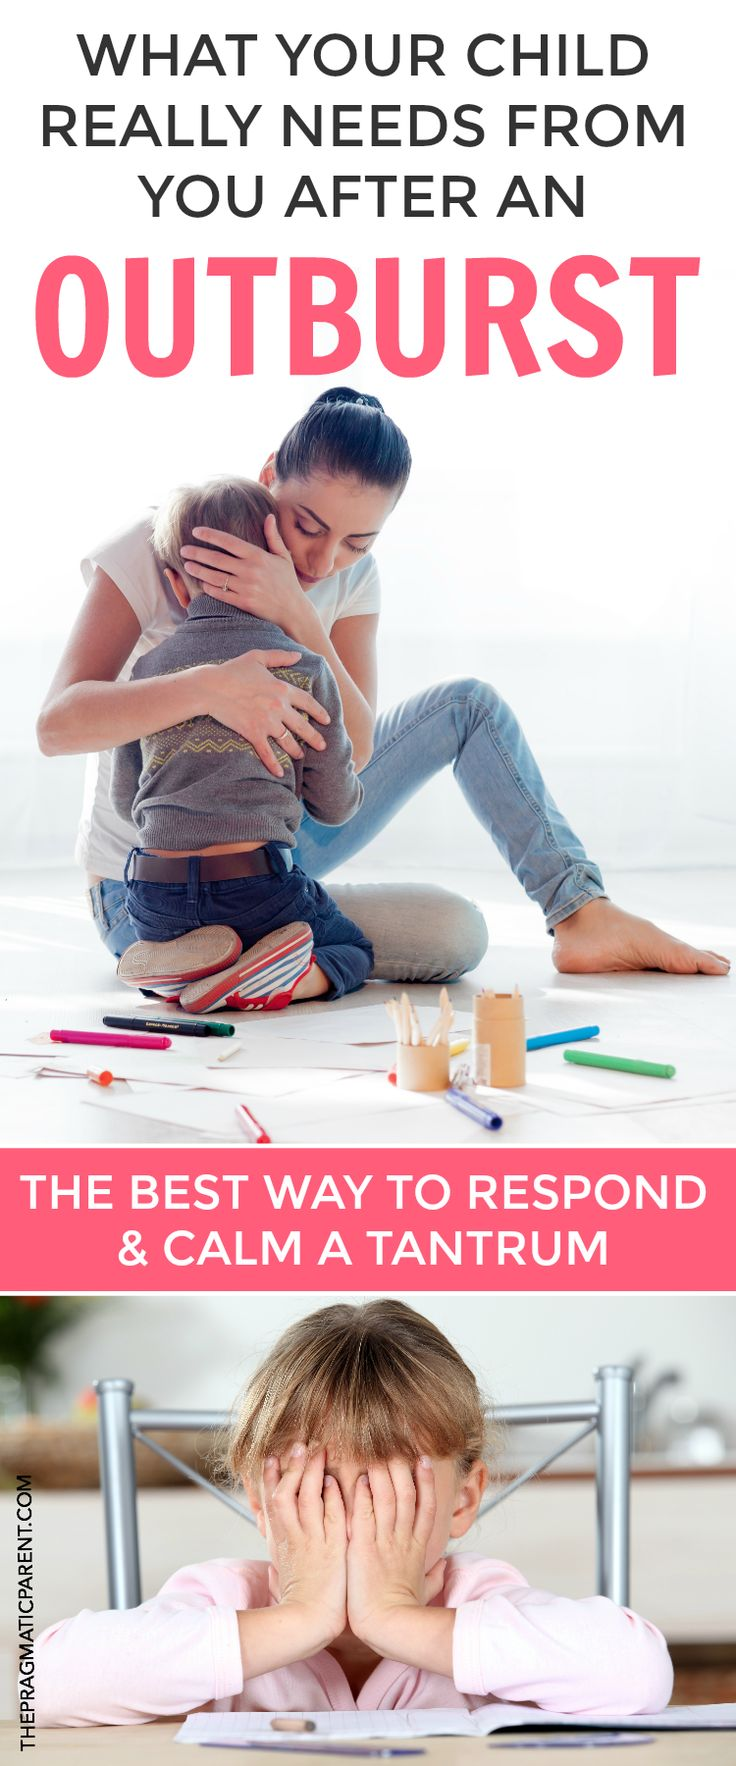 How to peacefully defuse your child's tantrum using empathy and teaching about emotions in the process. What outbursts really mean and what your child needs from you afterwards. The best way to respond & calm down a tantrum! Stop tantrums by helping your child learn about emotions, name feelings, give back power and calmly handle emotional behavior. #calmatantrum #tempertantrums #tantrums